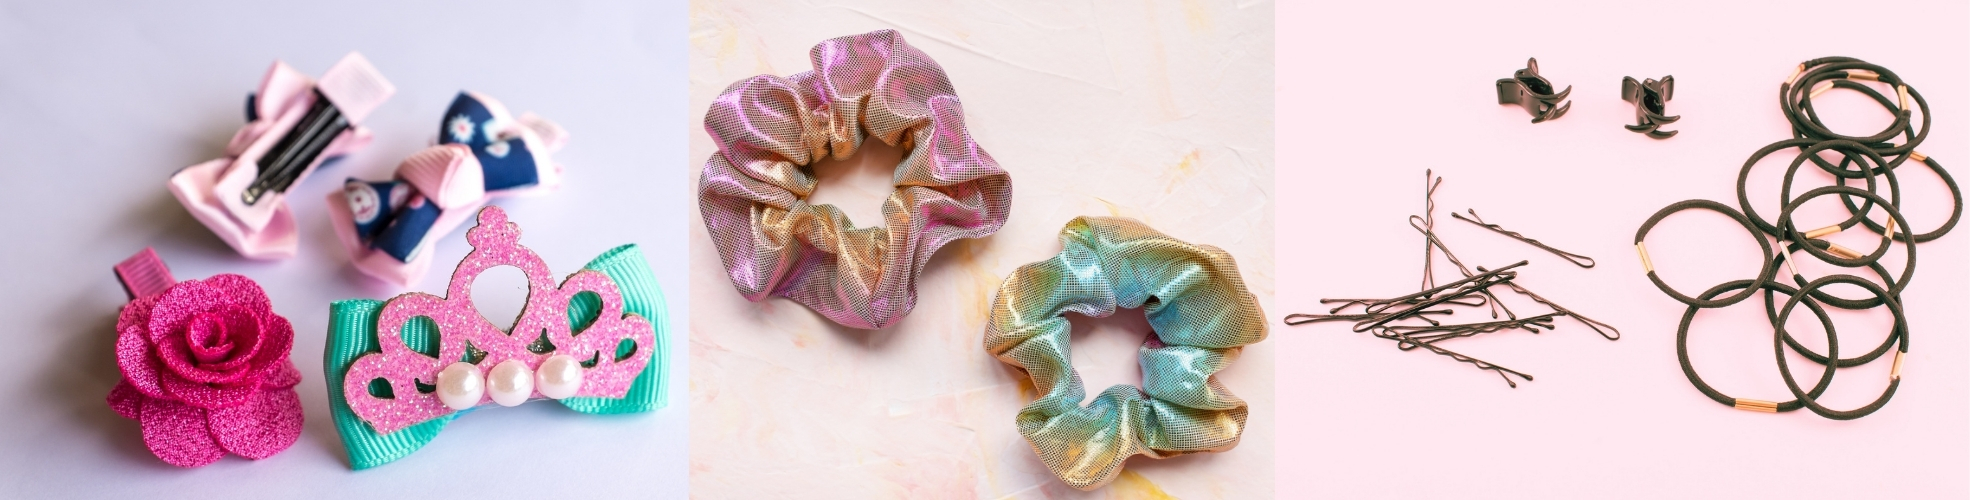 Browse our range of wholesale hair accessories available in a variety of colours, designs and styles. Perfect hair accessories for back to school, everyday use or styling.